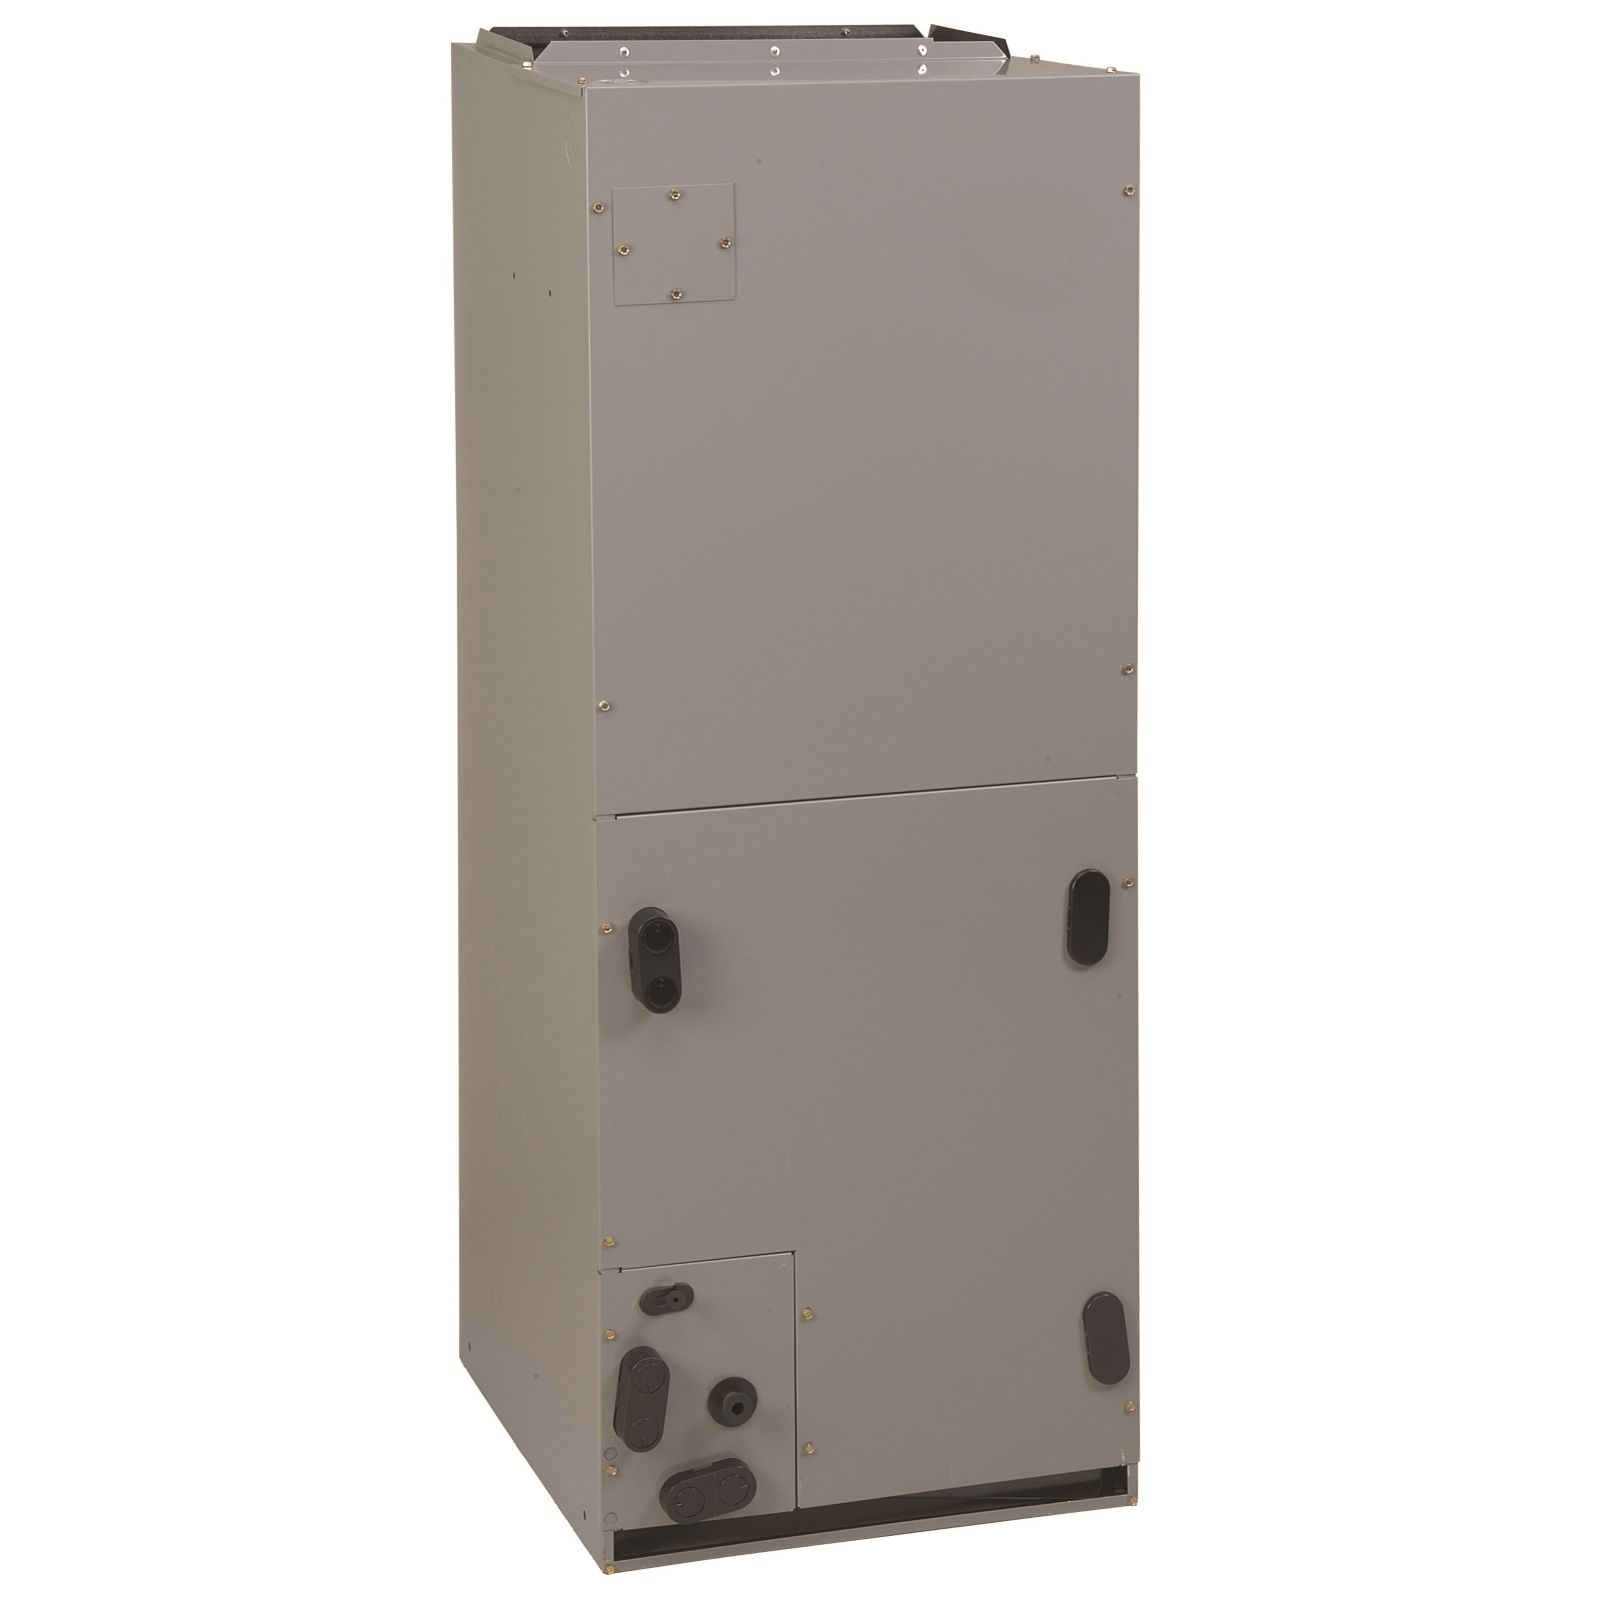 EcoTemp WAPM304A - 2 1/2 Ton, R410A, Air Handler Unit With High Efficiency ECM Motor